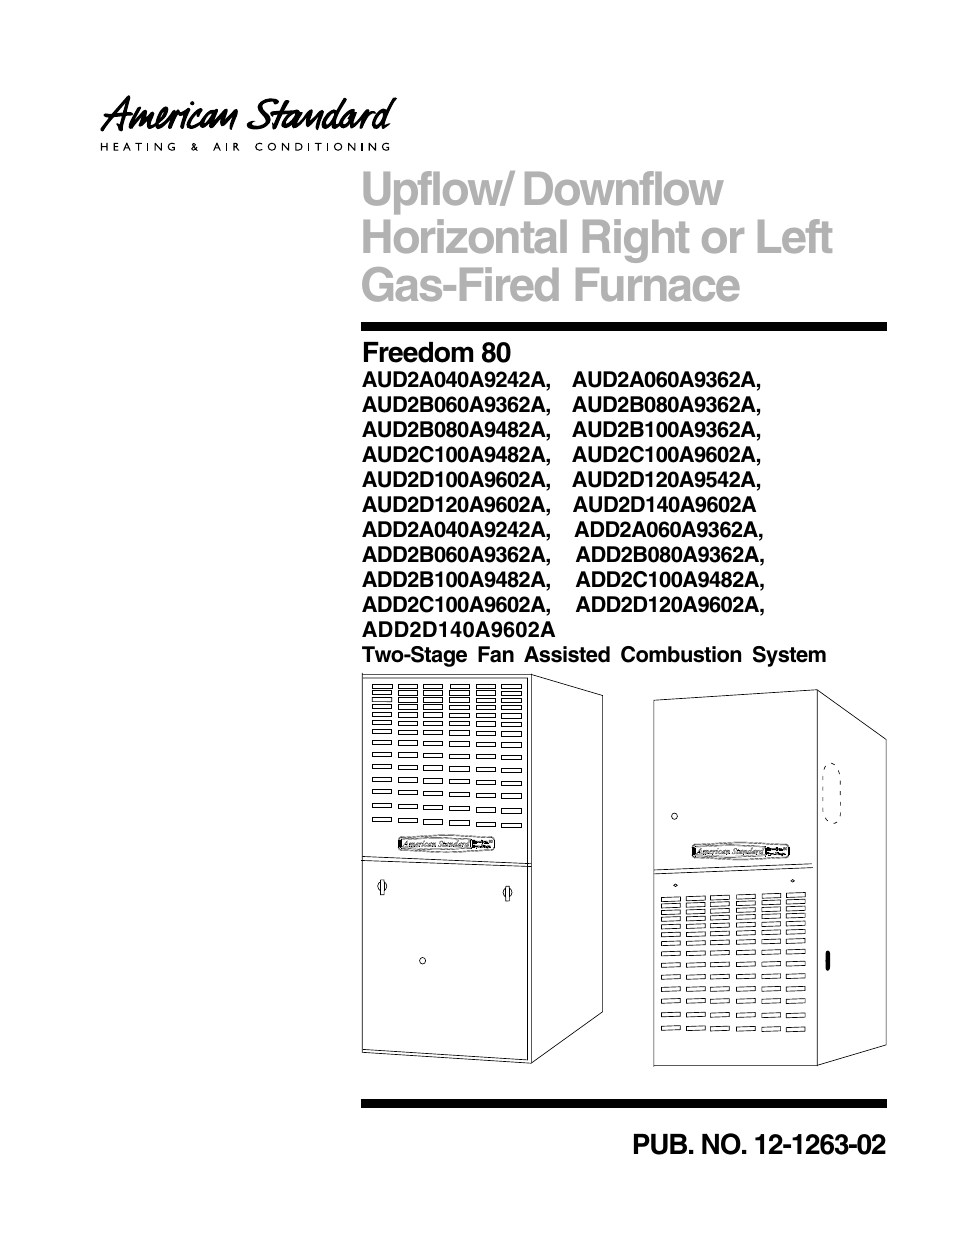 American Standard Freedom 80 User Manual 24 Pages Air Furnace Schematic